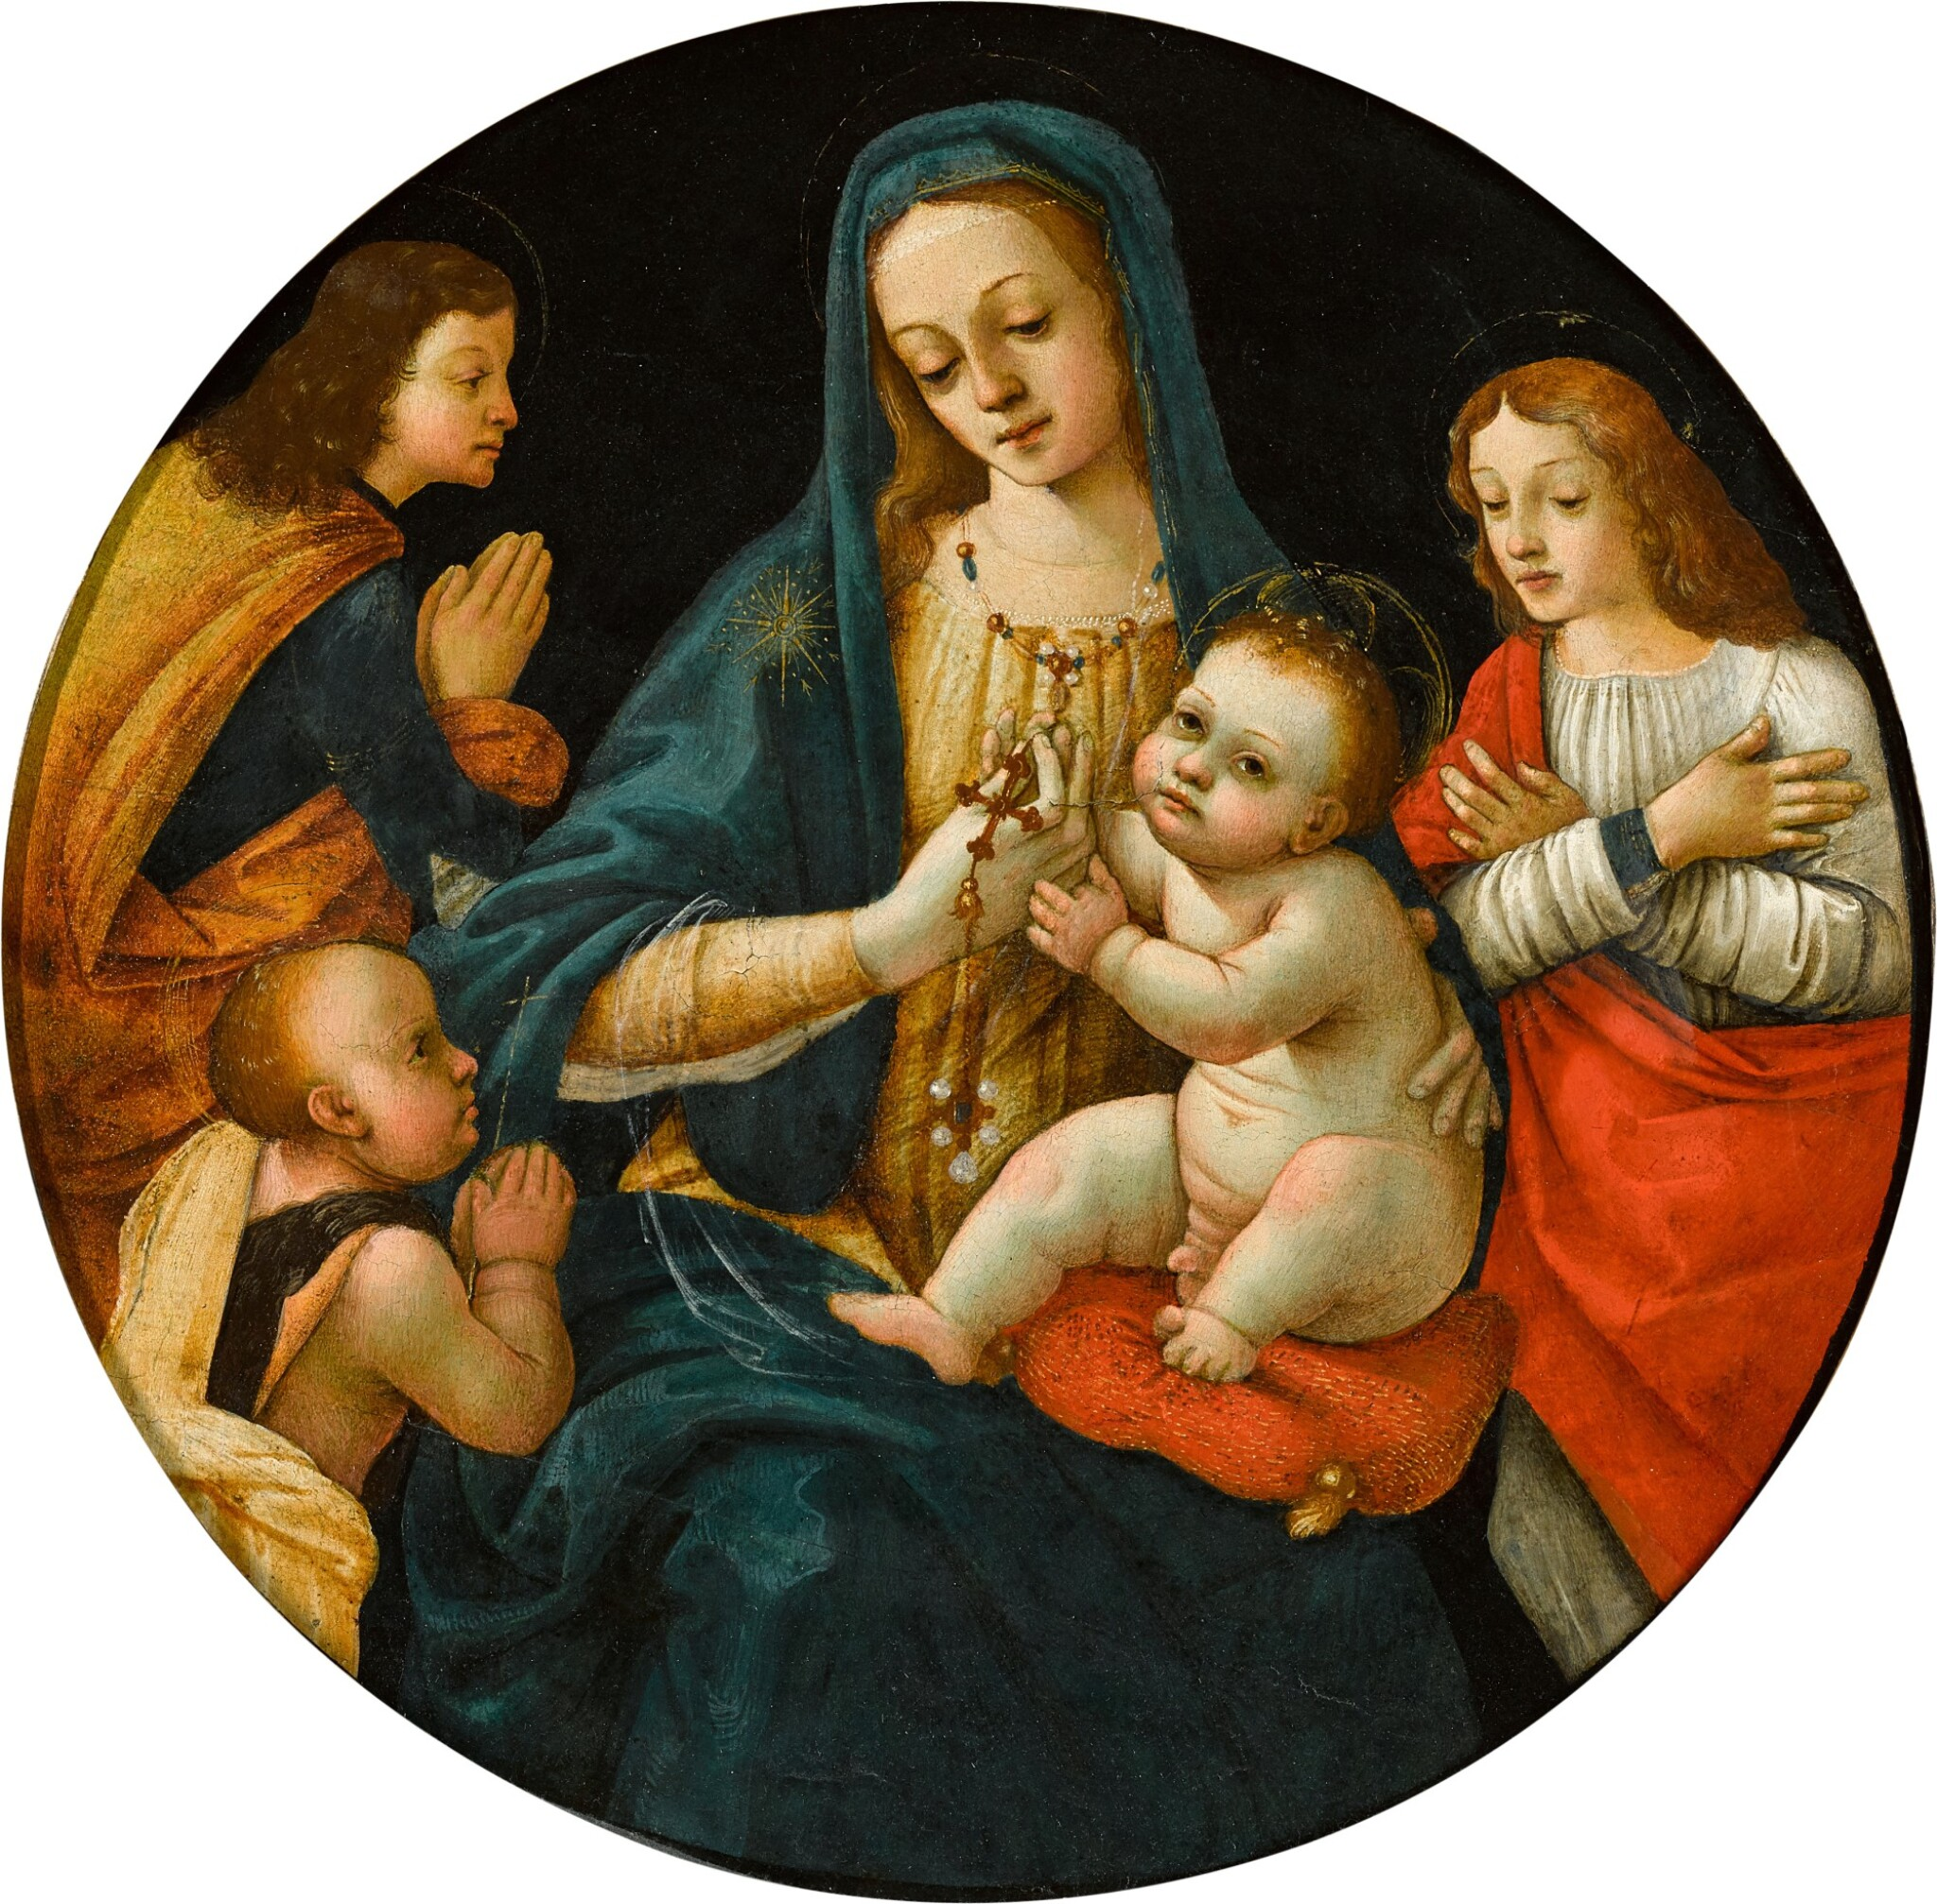 View full screen - View 1 of Lot 10. MICHELANGELO DI PIETRO MEMBRINI, FORMERLY KNOWN AS THE MASTER OF THE LATHROP TONDO     MADONNA AND CHILD, WITH THE INFANT SAINT JOHN AND TWO SAINTS.